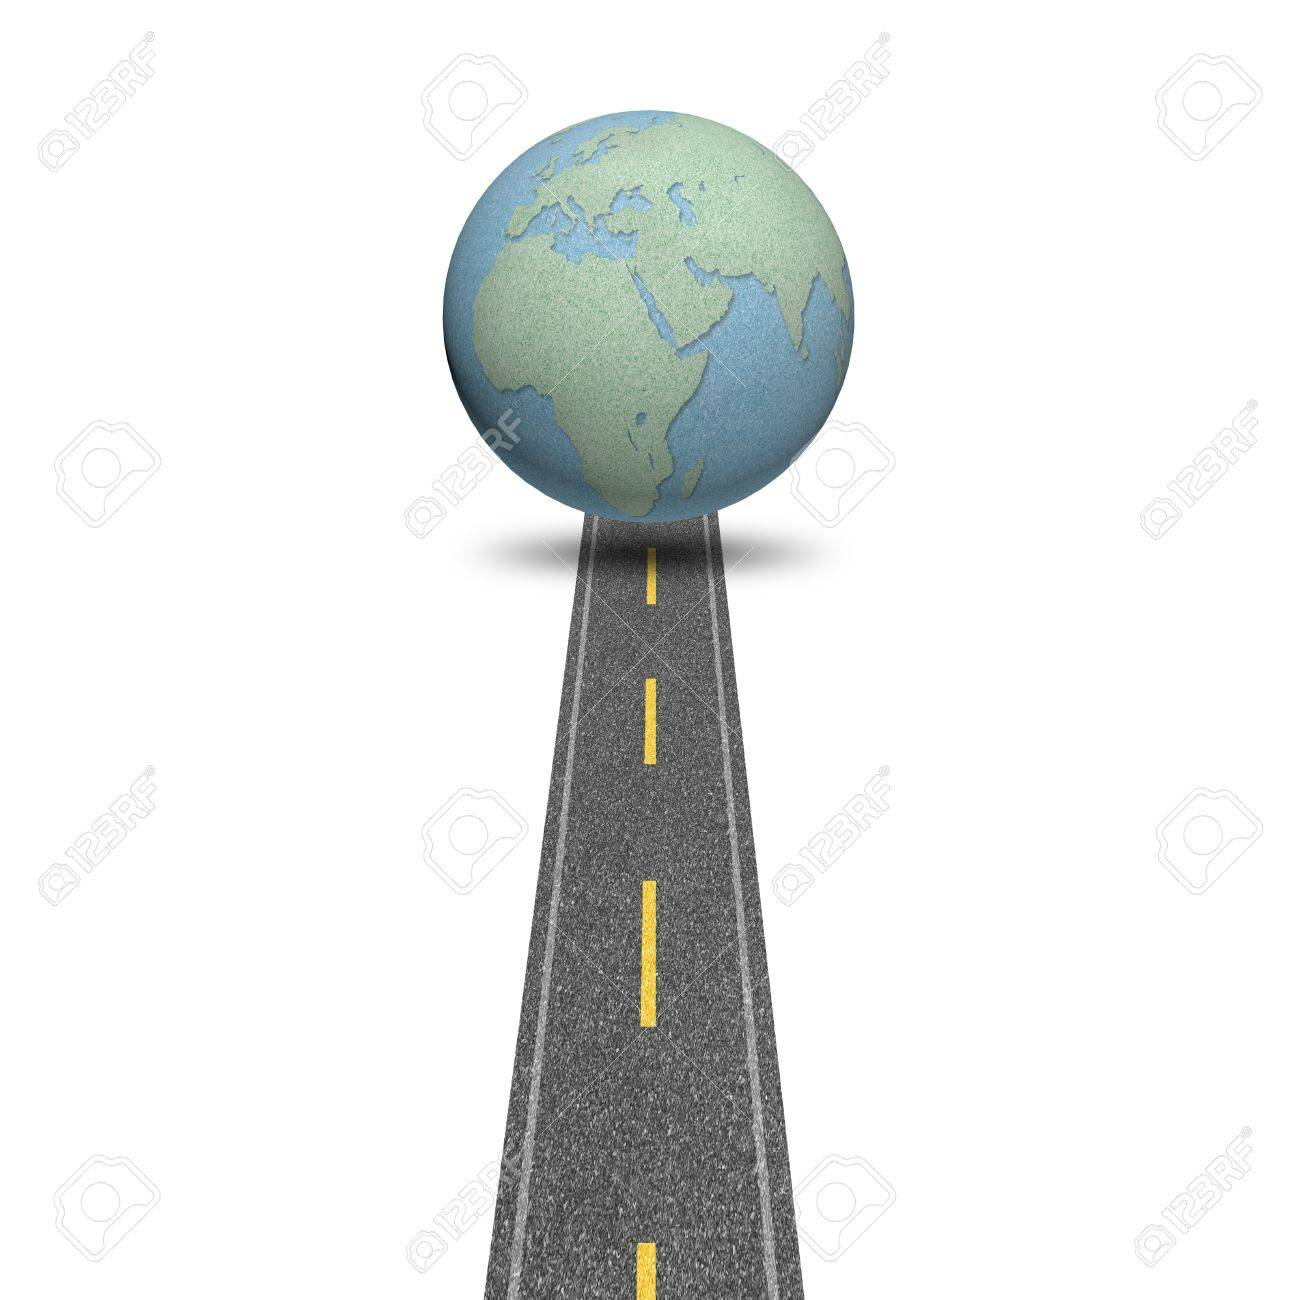 Concept globes road story on white isolate background Stock Photo - 13633478